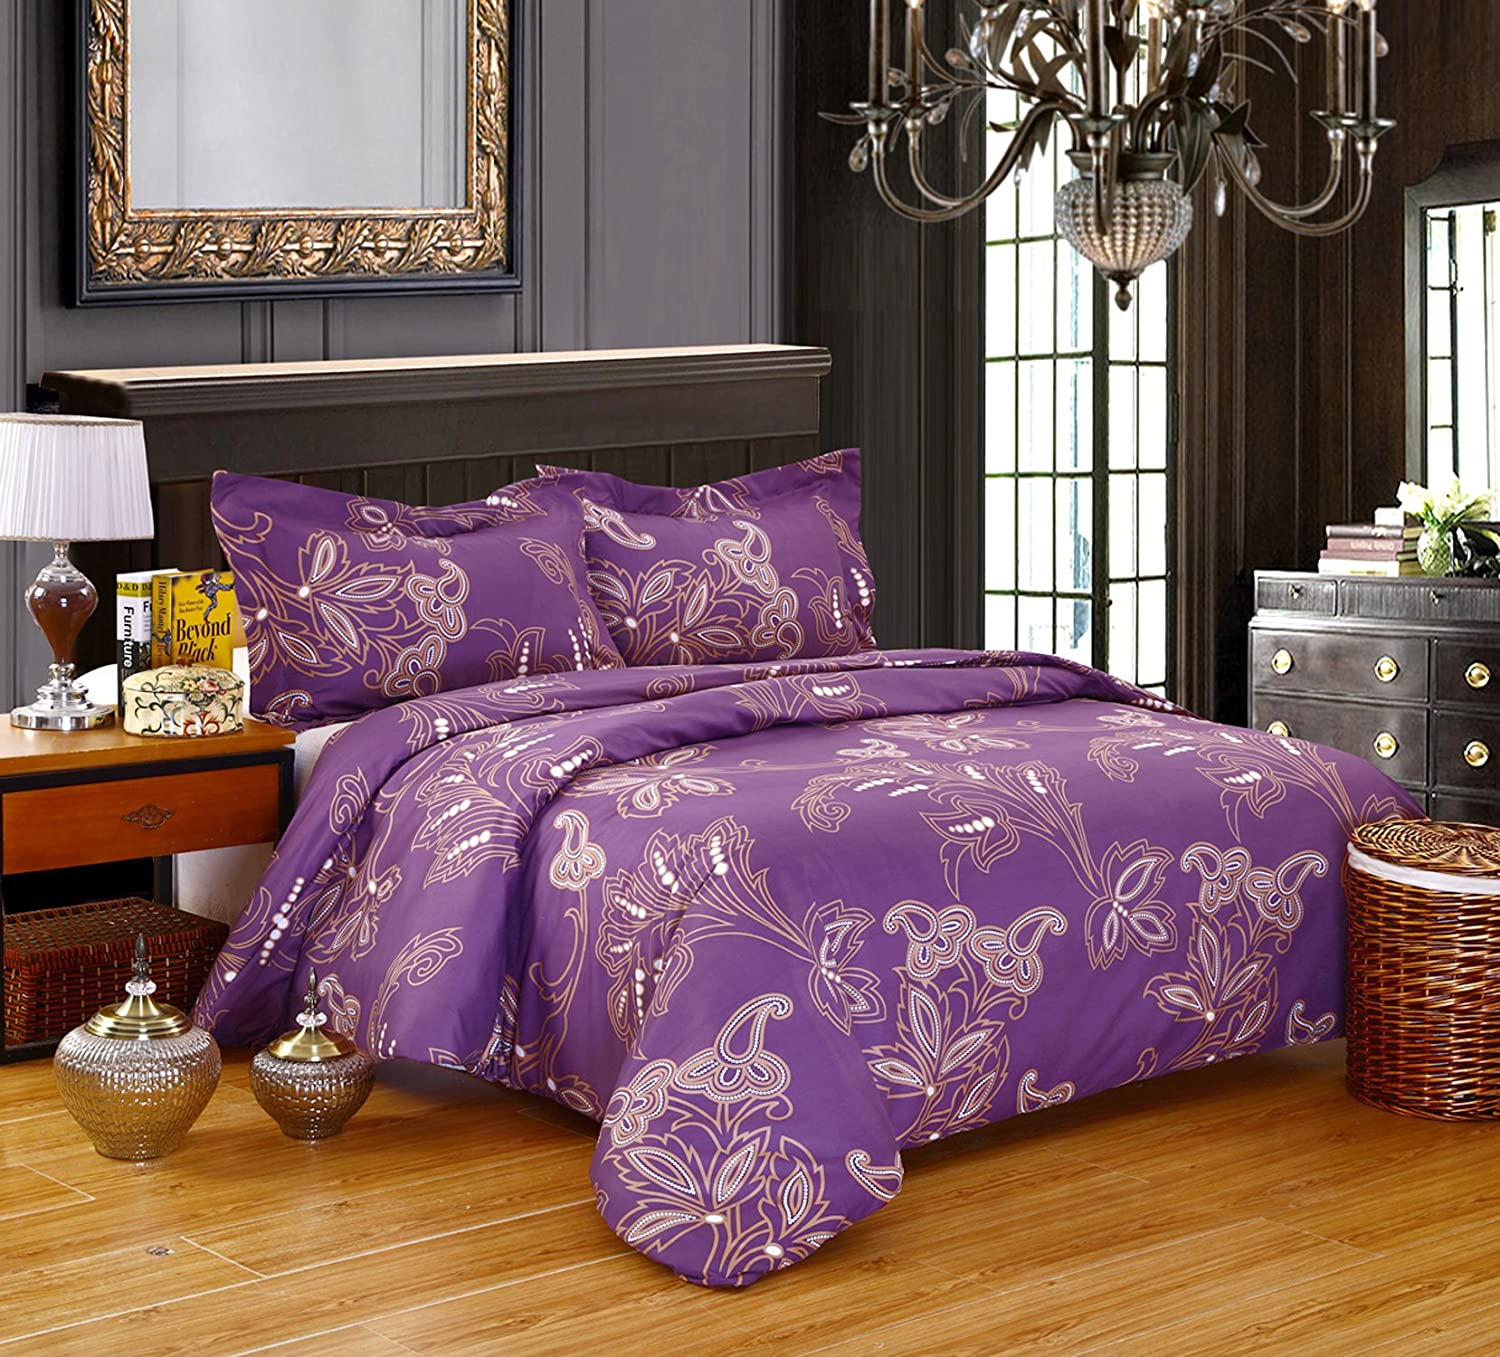 Luxury Hotel Quality Comfortable 3 pcs set Duvet Cover Full/Queen Lilac